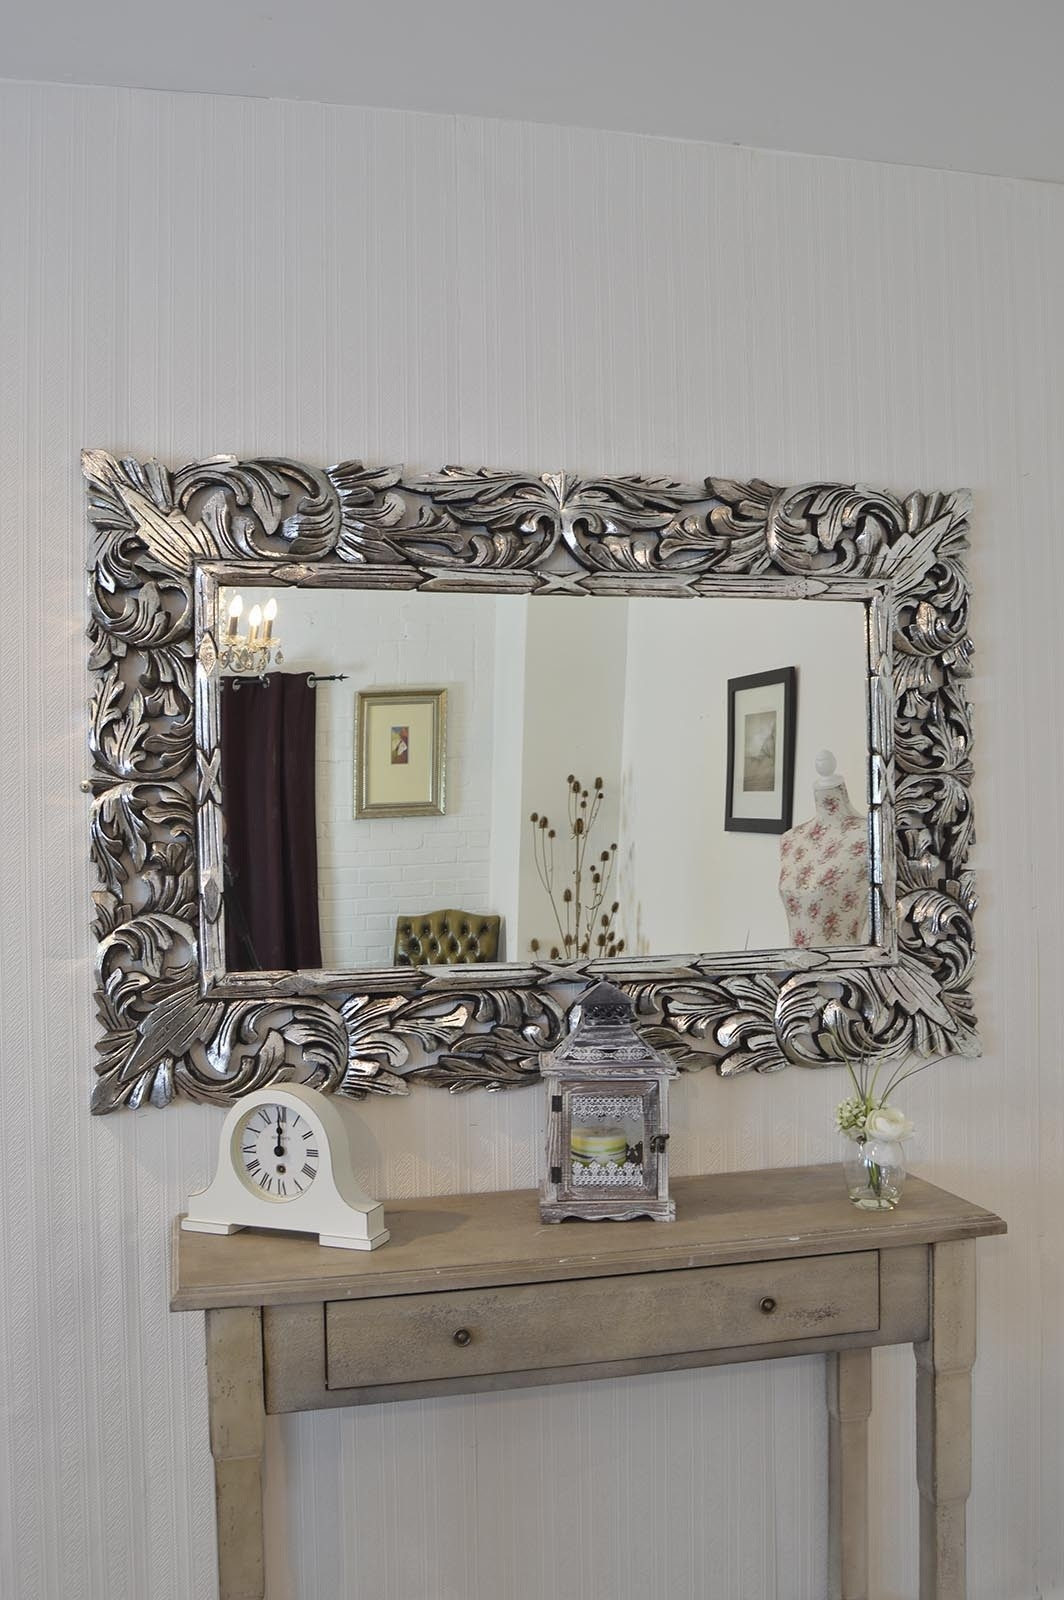 4ft11 X 3ft4 Large Silver Carved Ornate Wall Mounted Mirror Wood Inside Silver Ornate Framed Mirror (Image 1 of 15)